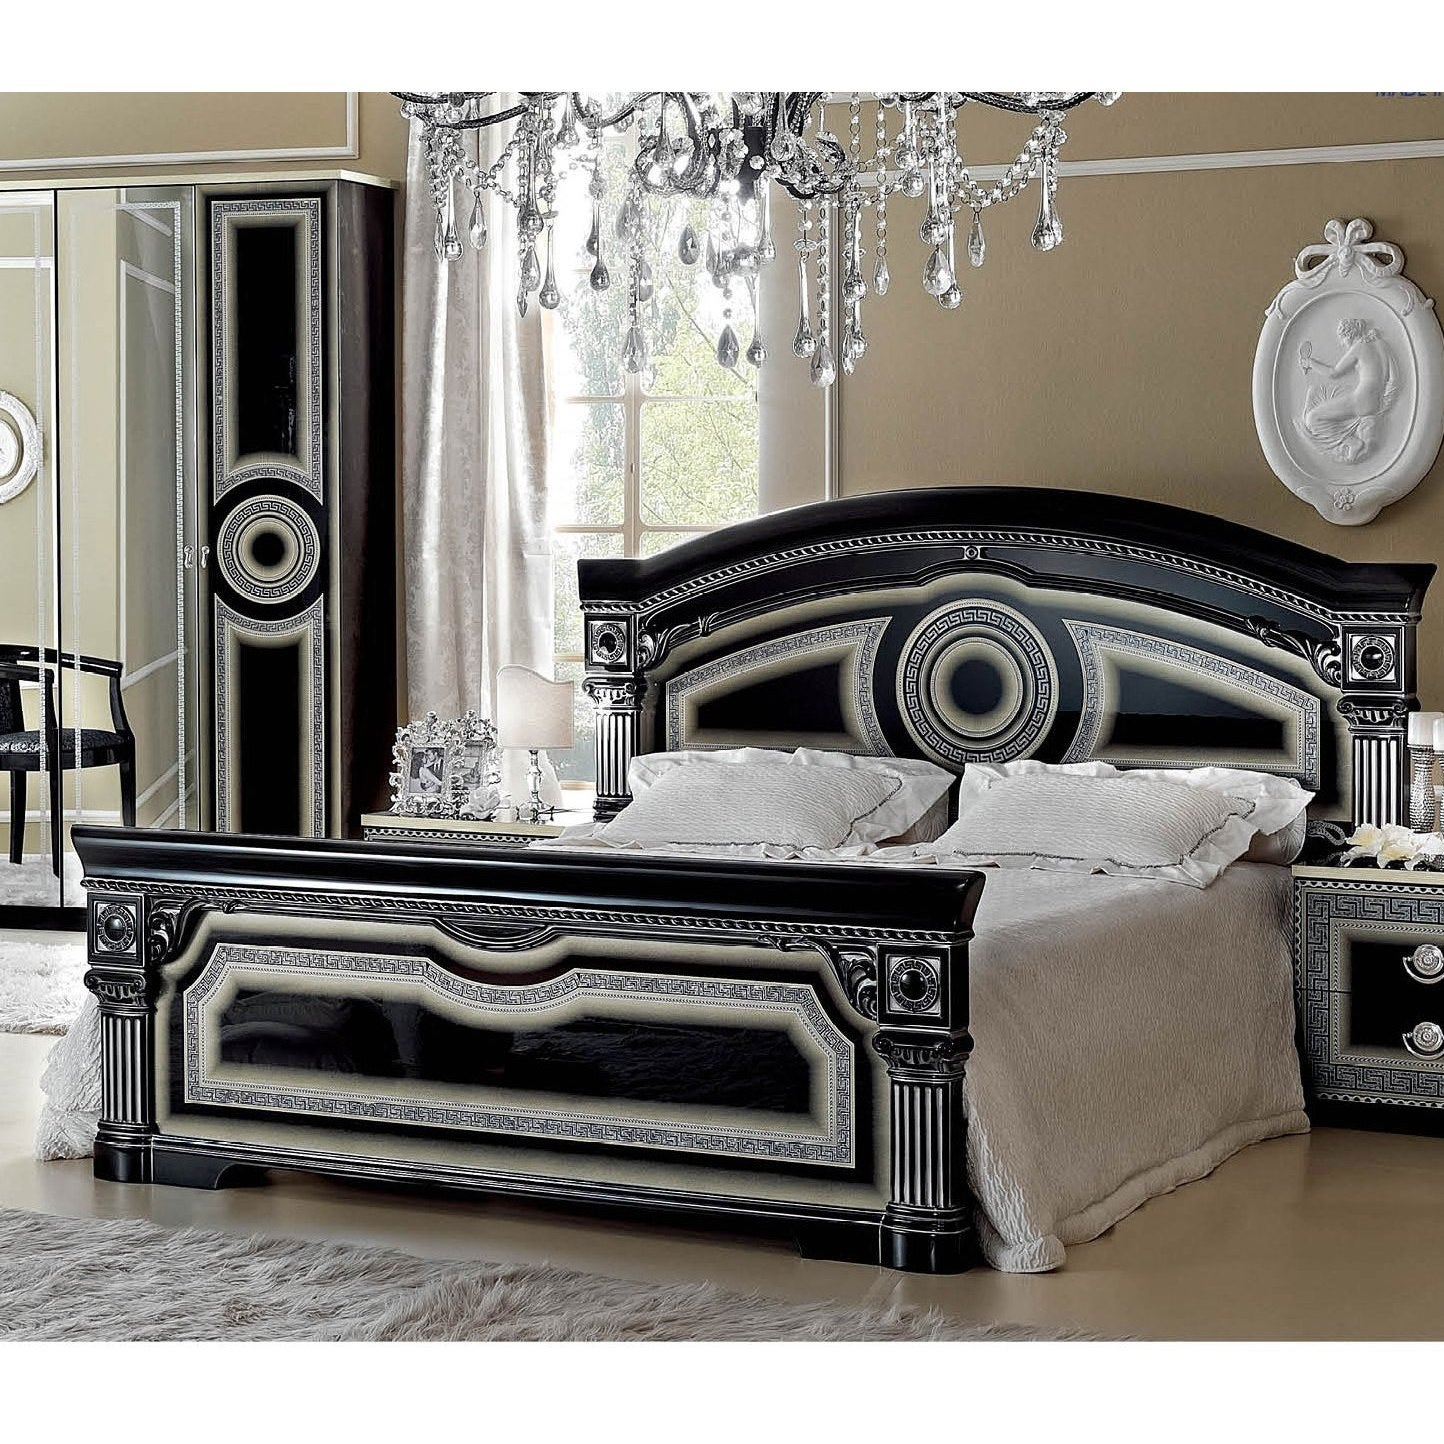 Luca Home Black/Silver Bed (King)